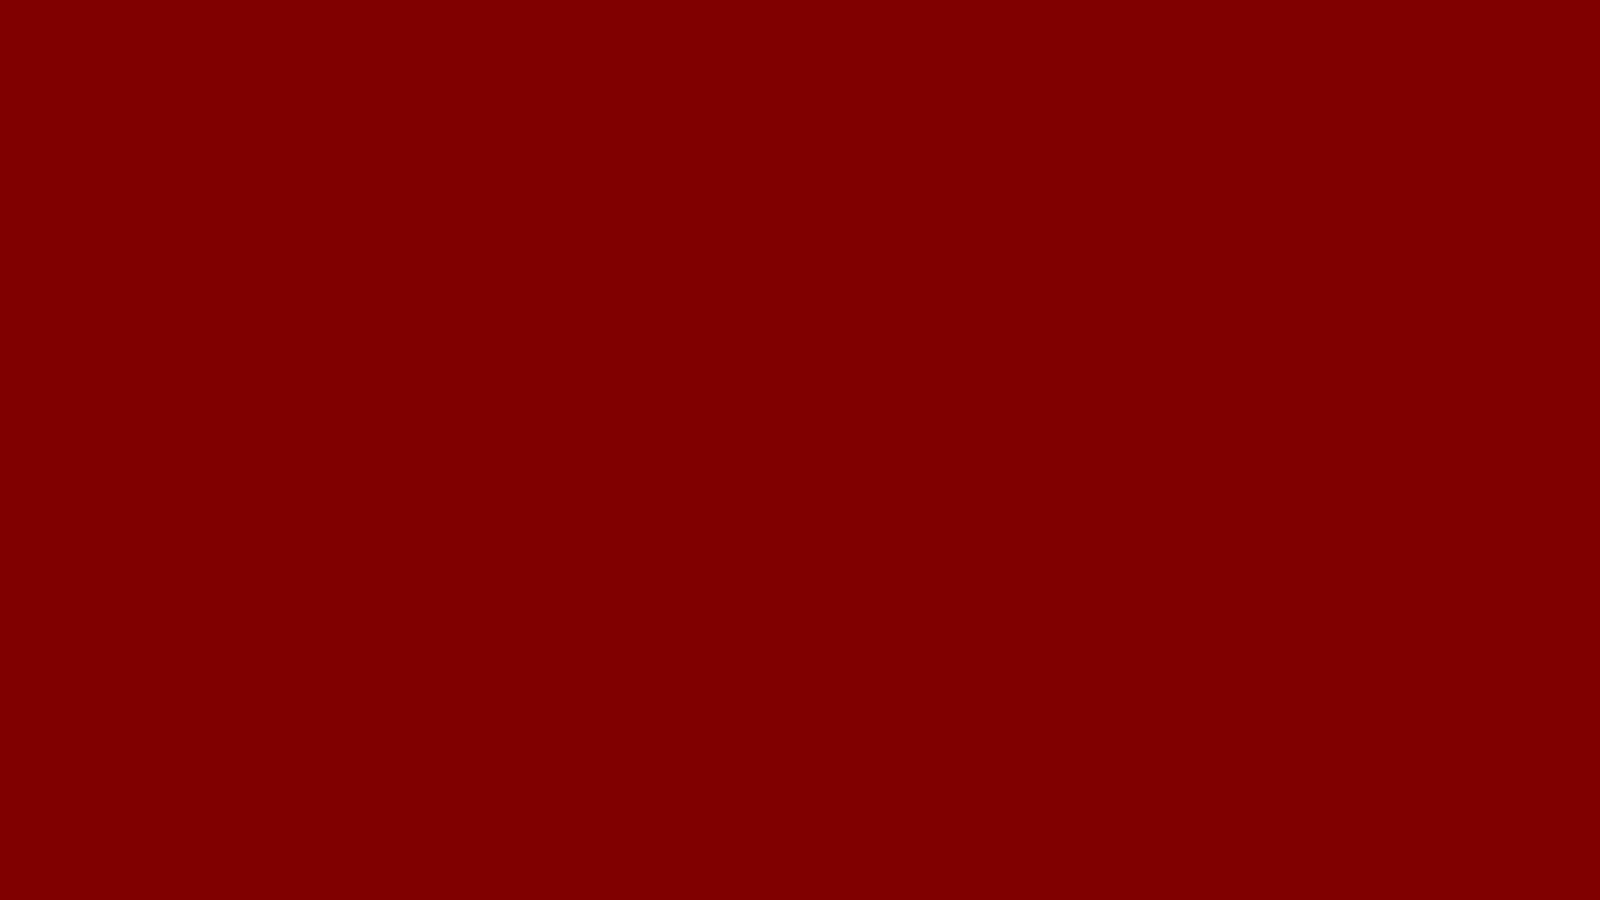 1600x900 Maroon Web Solid Color Background